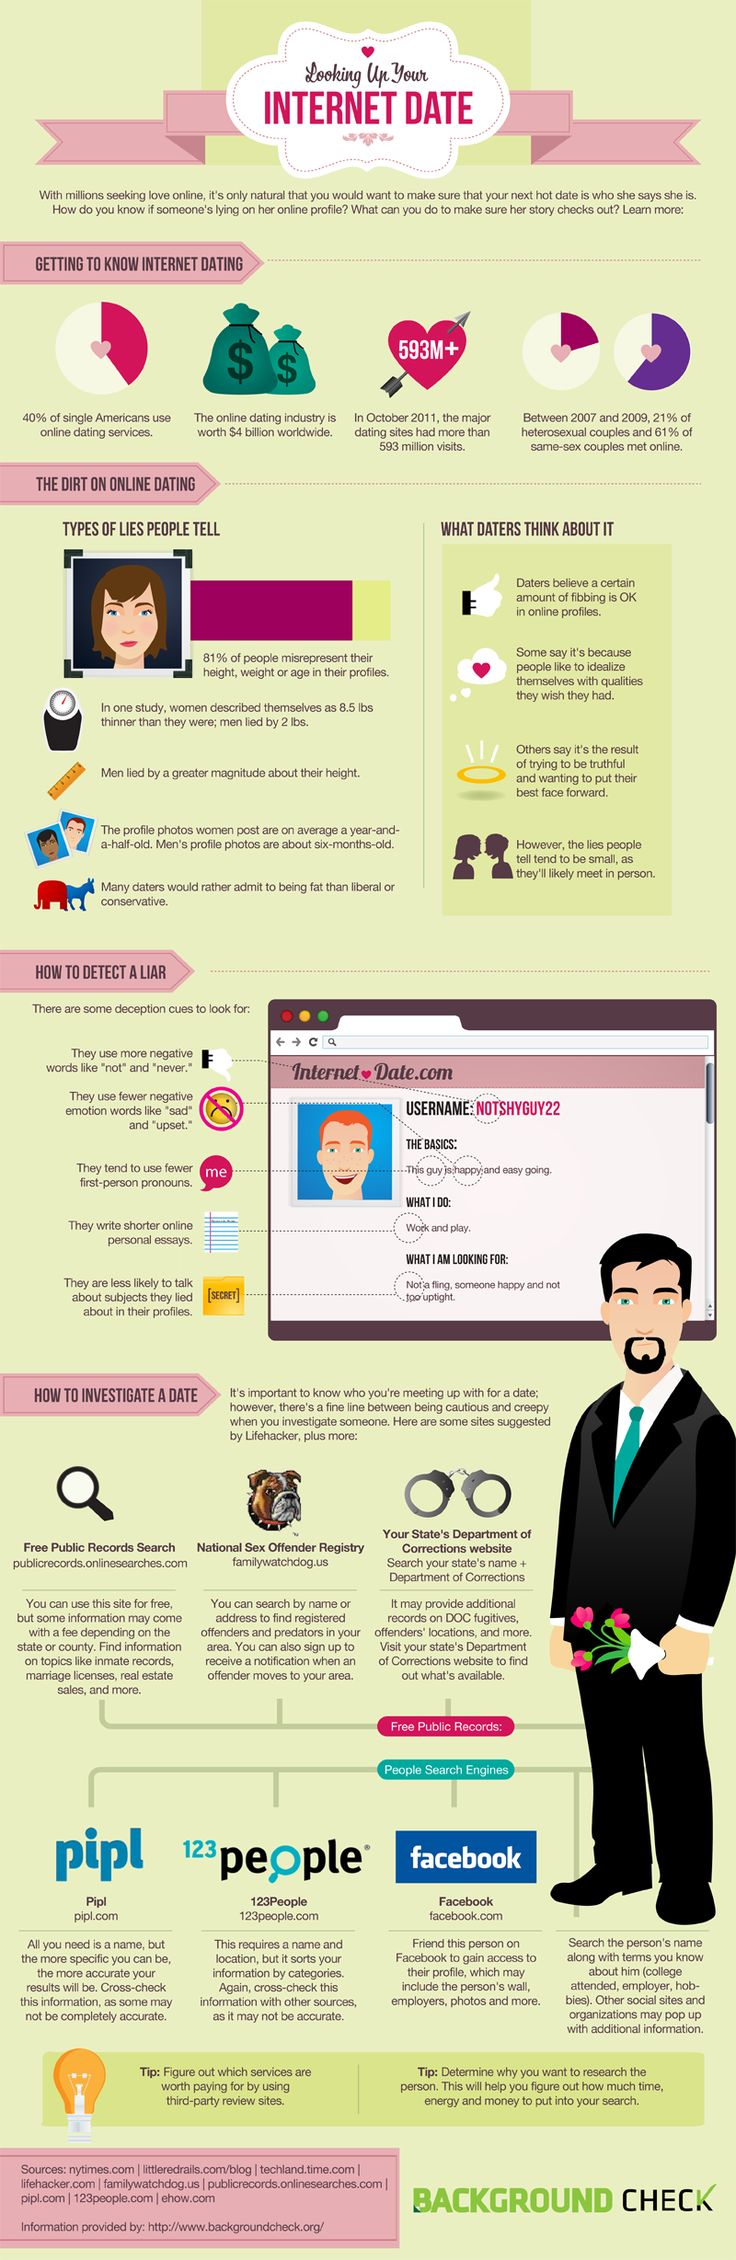 Looking-Up-Your-Internet-Date-infographic  Find always more on  http://infographicsmania.com